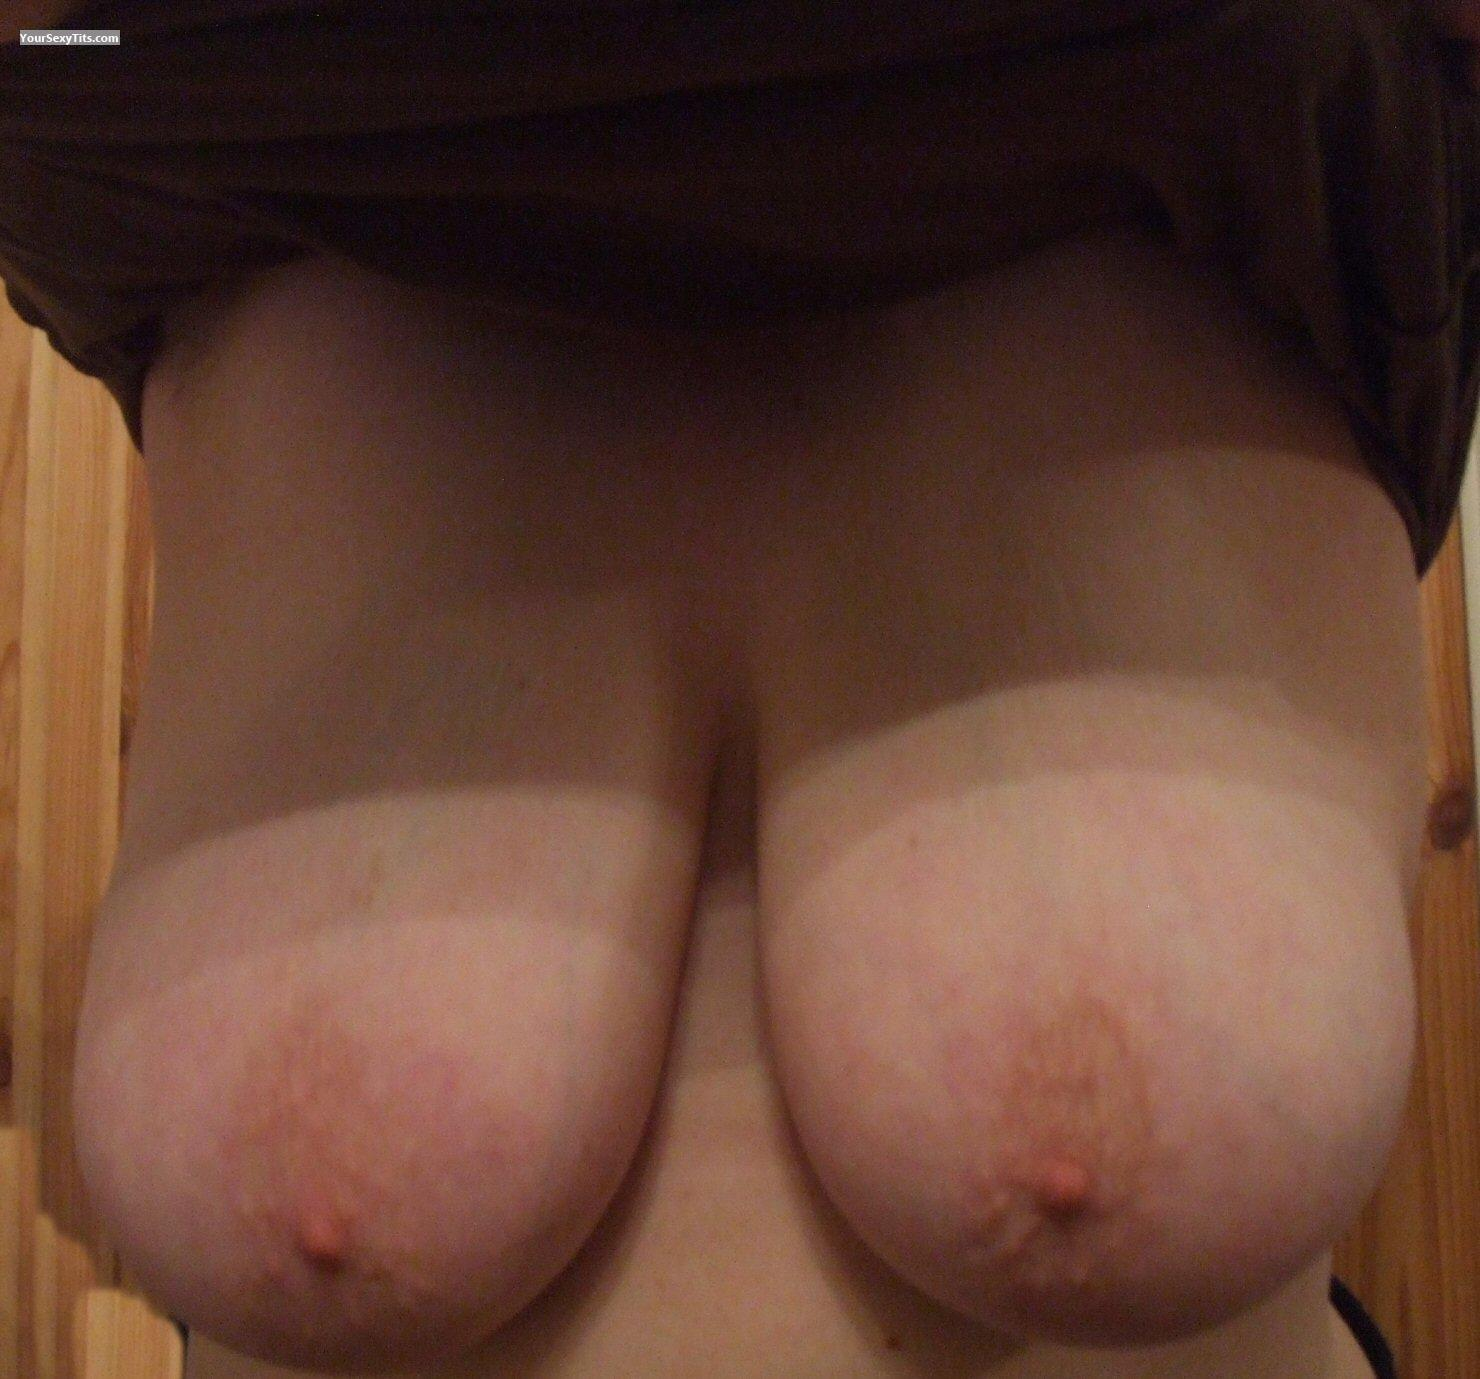 Tit Flash: Very Big Tits - Boobies from United Kingdom